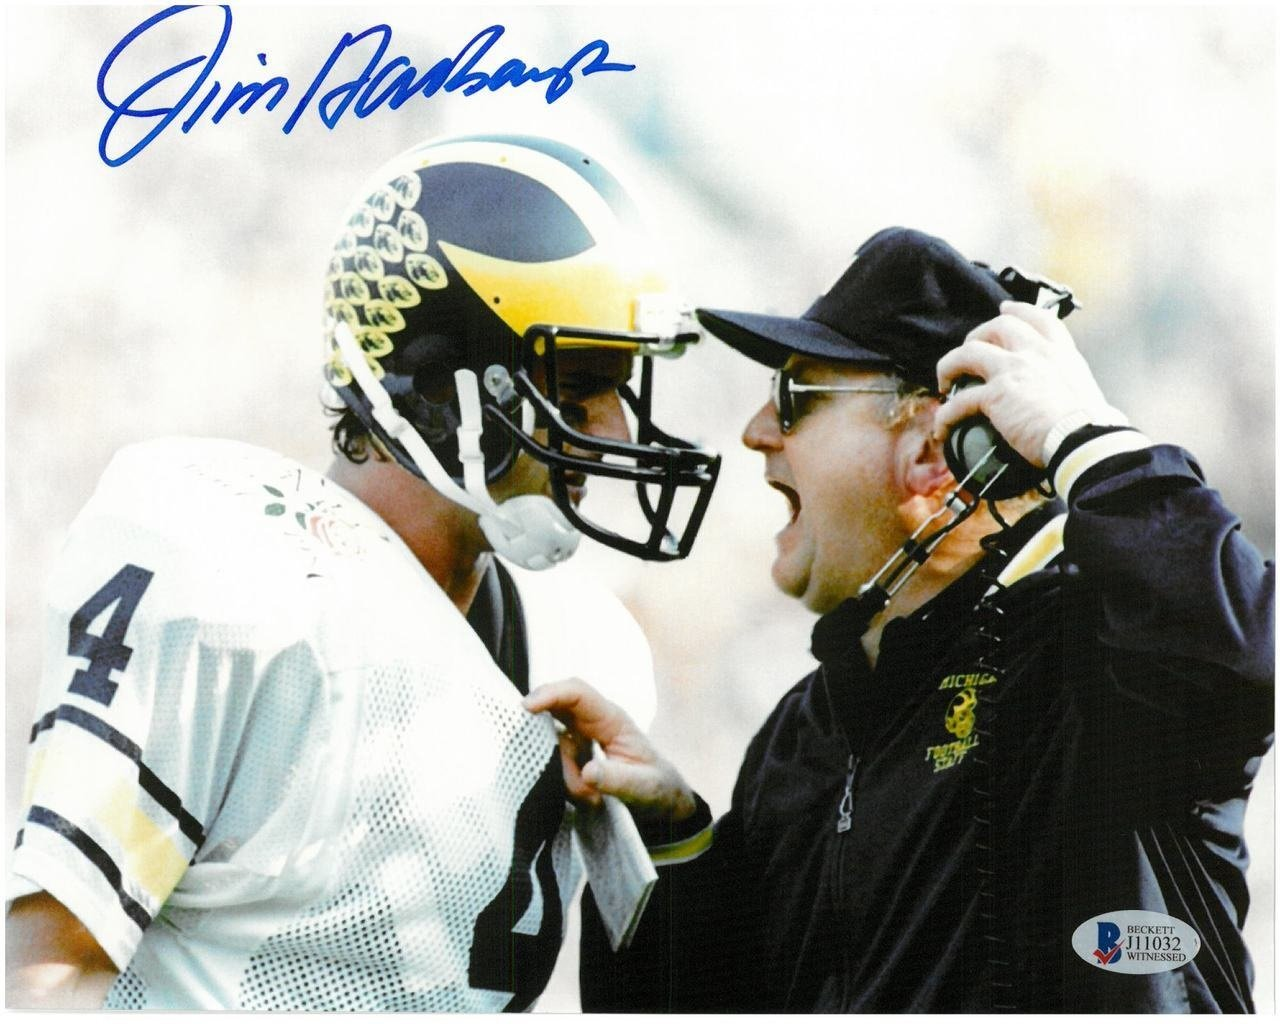 JIM HARBAUGH AUTOGRAPHED UNIVERSITY OF MICHIGAN 8X10 PHOTO #1 JIM & BO